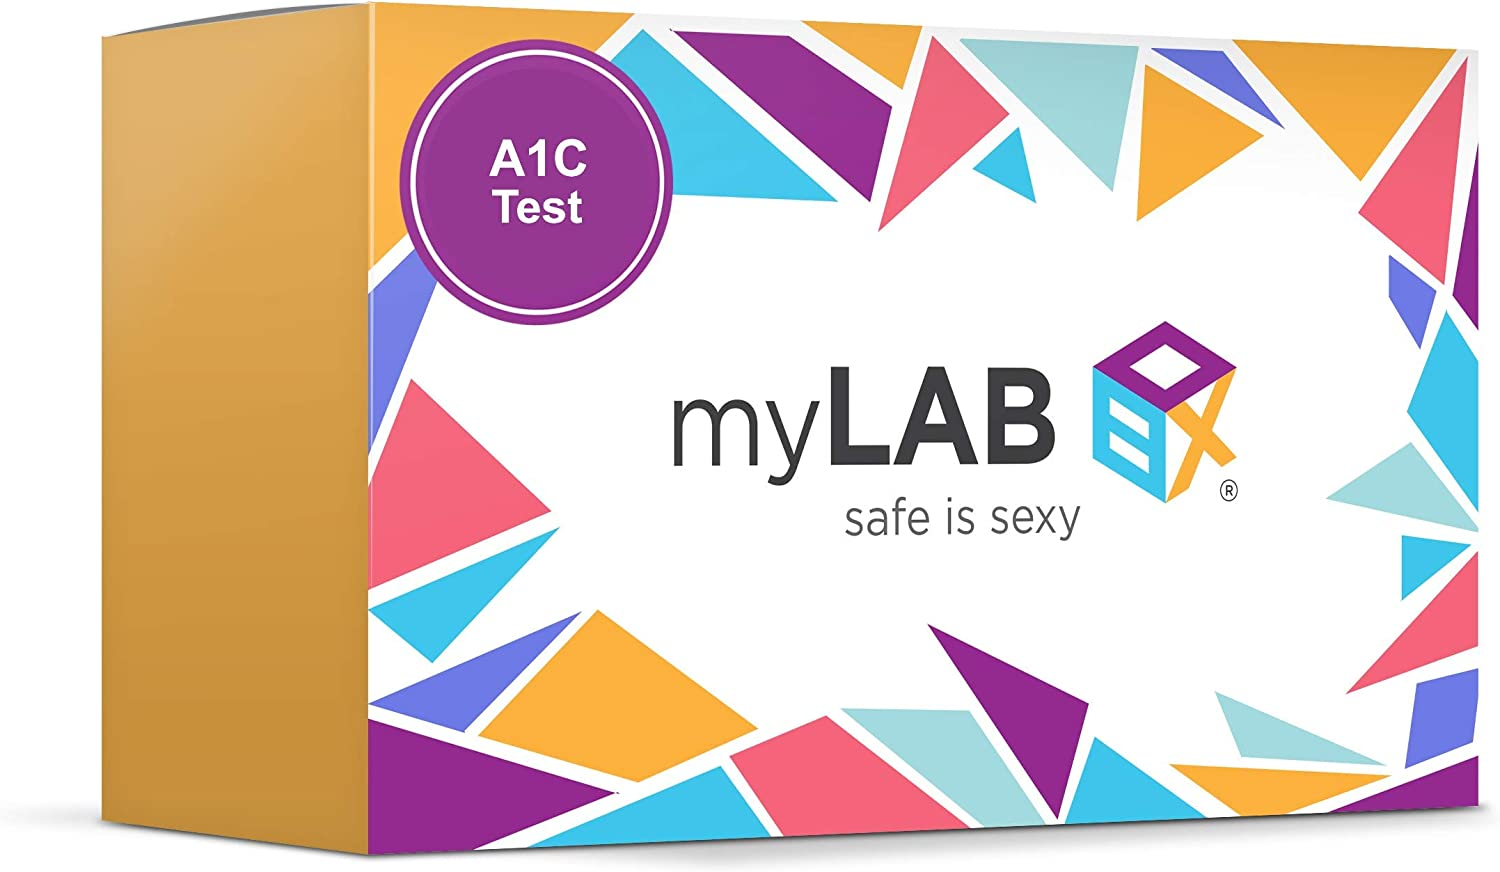 myLAB Box at Home Diabetes Hemoglobin A1c Screening Kit CLIA Lab Certified (Not Available in NY)